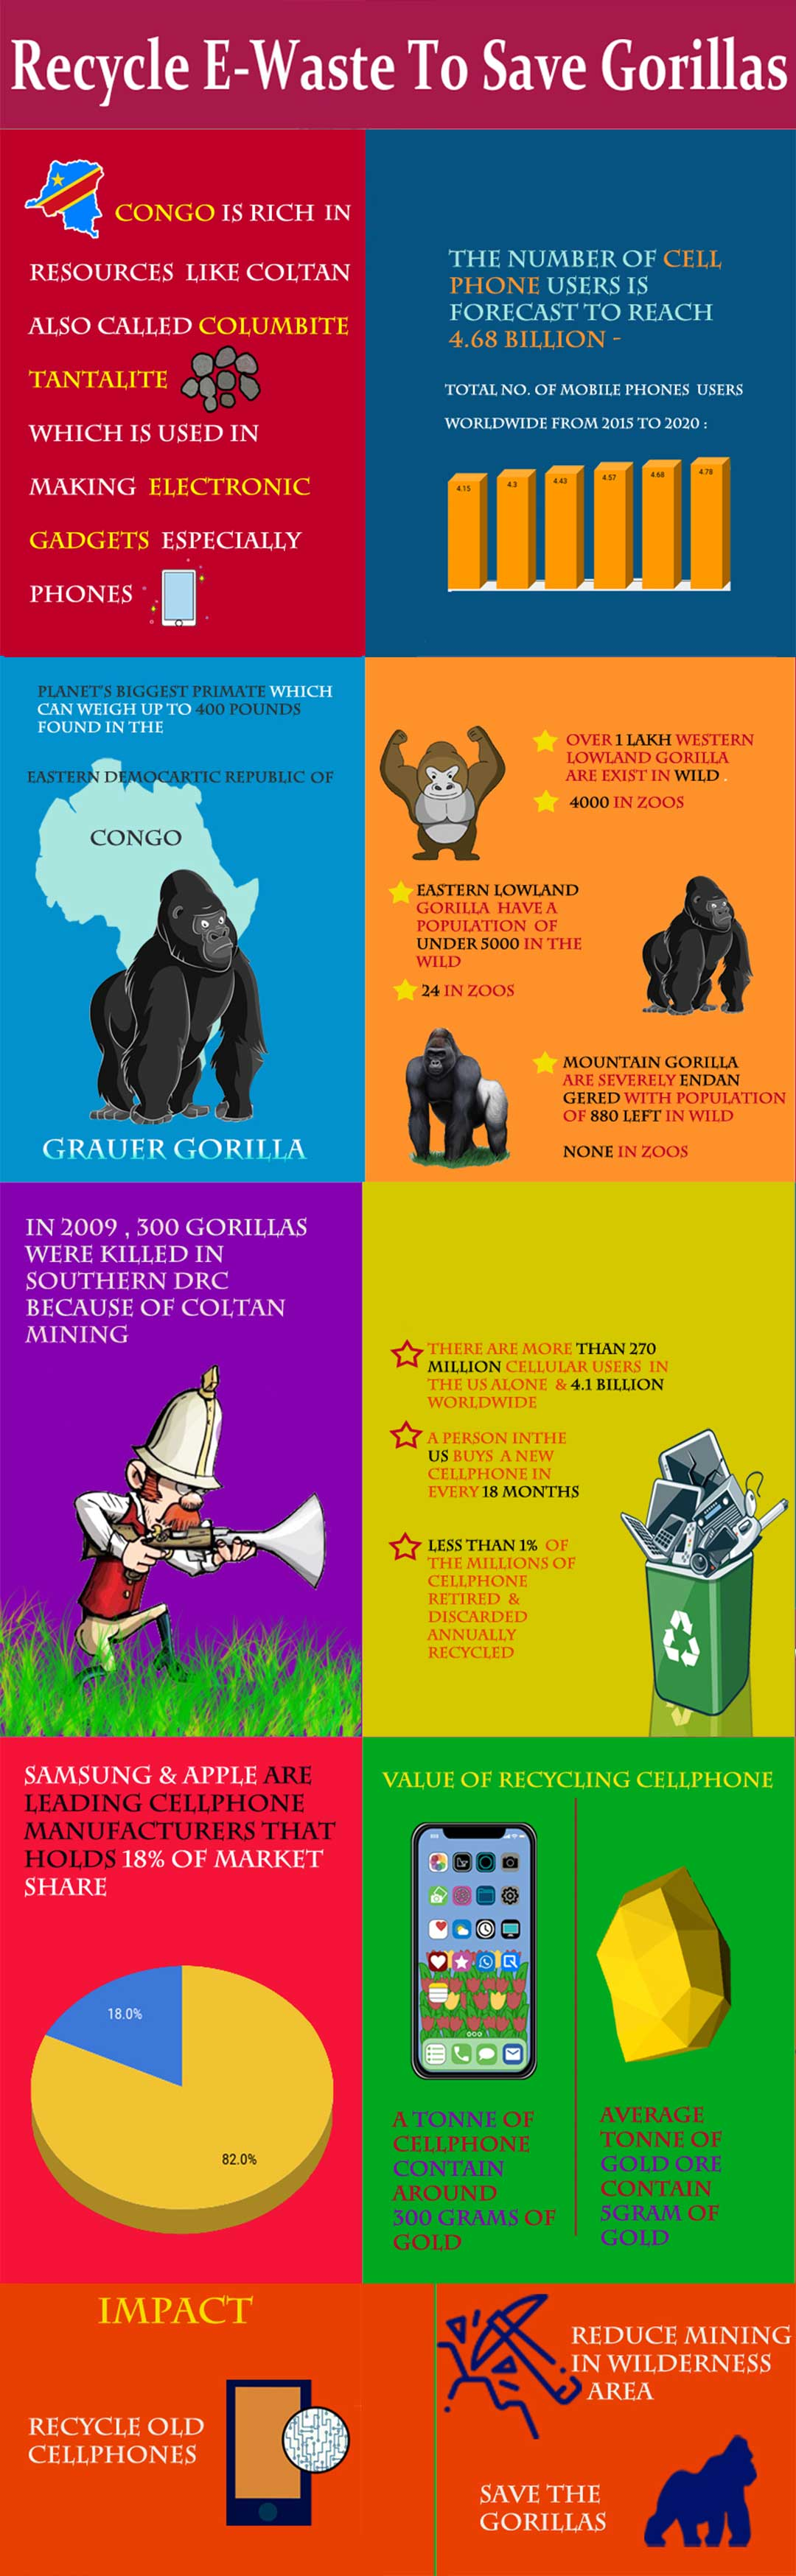 Infograhic Smart Ideas for Recycling E-Waste to Save Gorillas